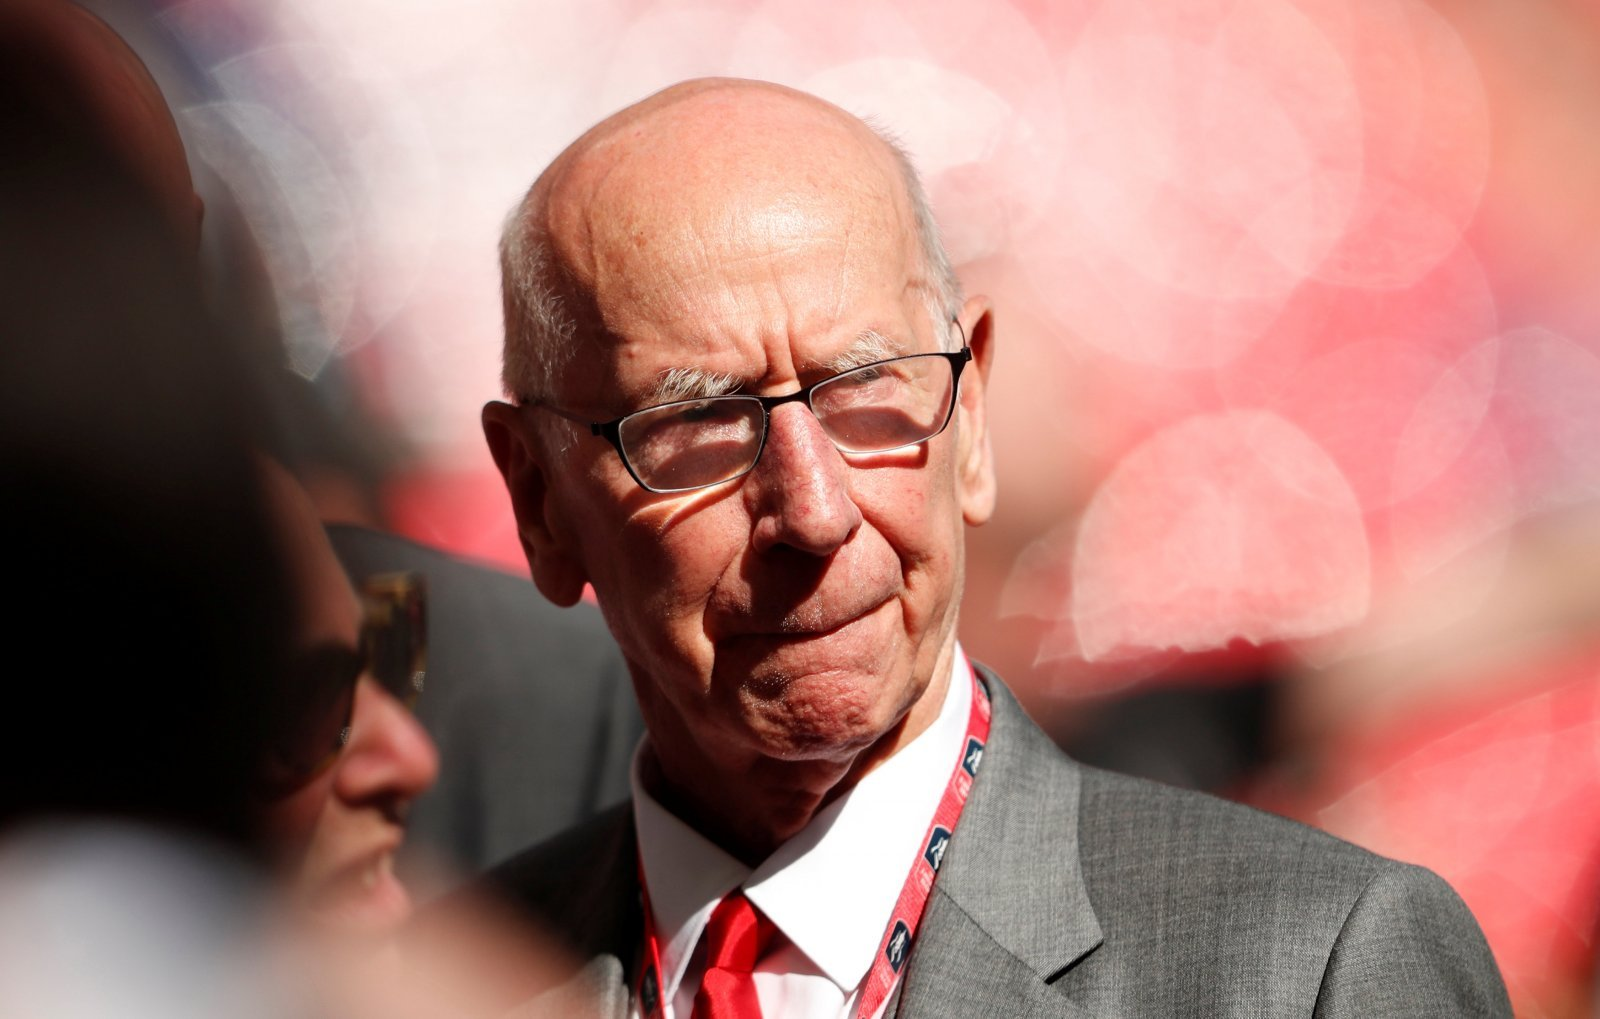 Manchester United: Fans ask if Bobby Charlton can play against Liverpool